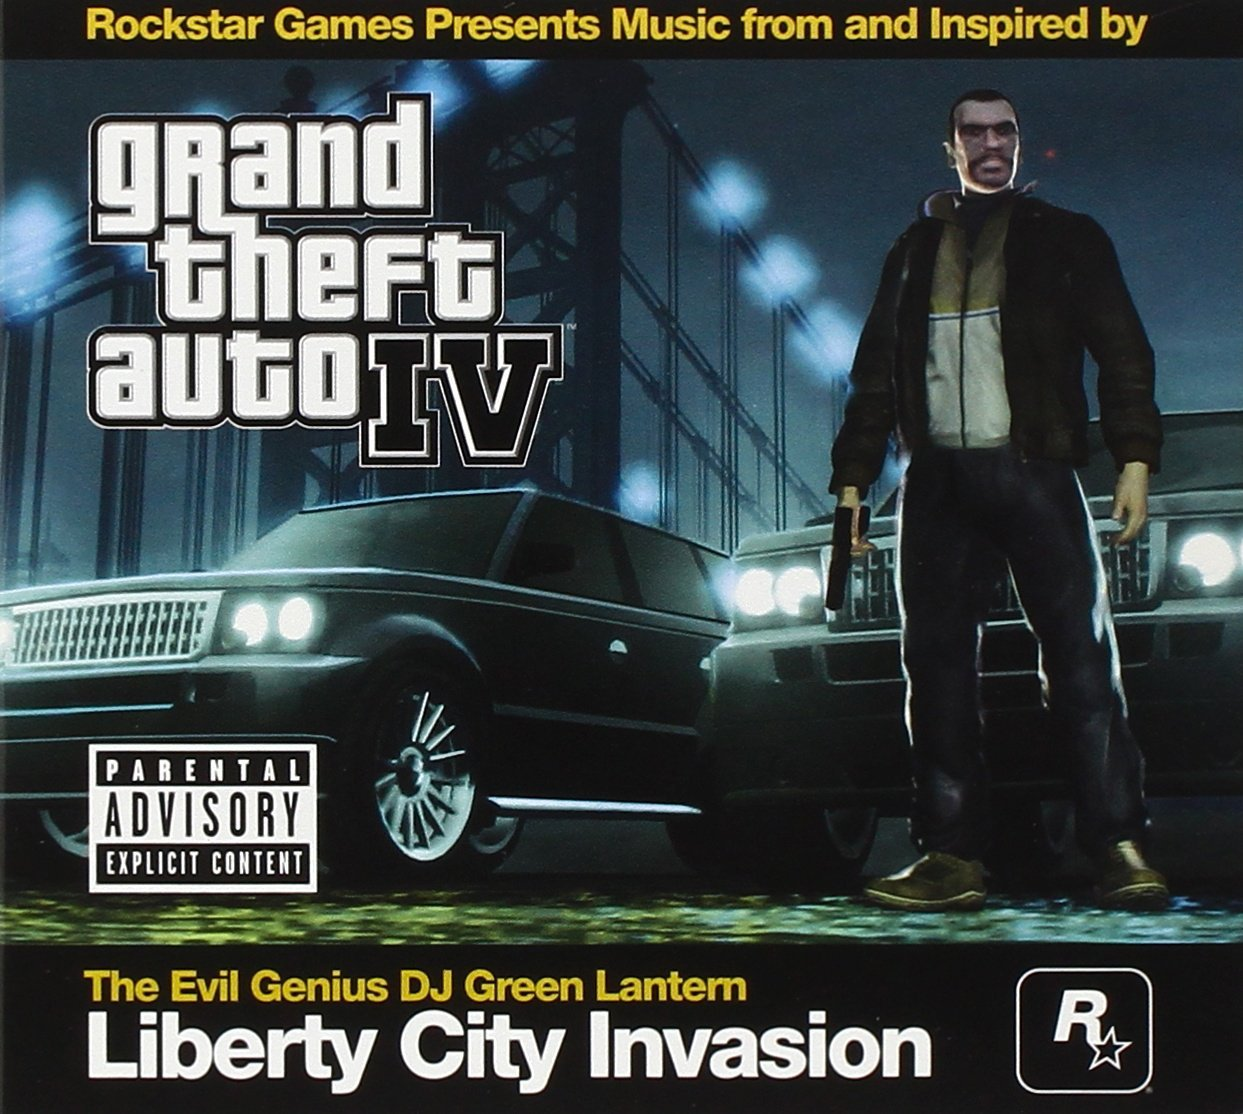 Dj Green Lantern Grand Theft Auto Iv Liberty City Invasion Amazon Com Music